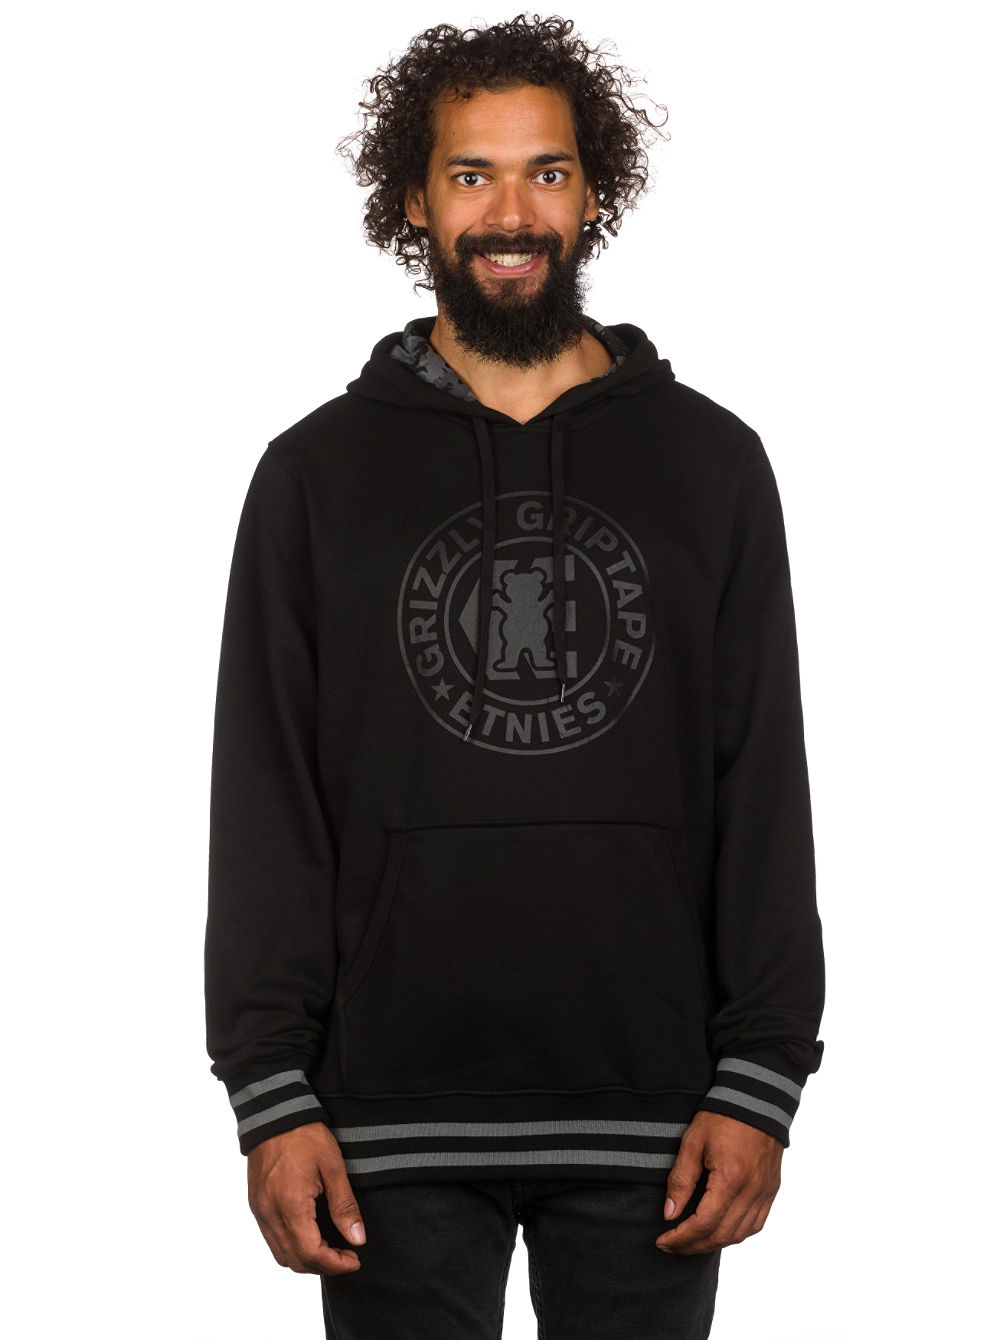 grizzly-corp-pullover-hoodie